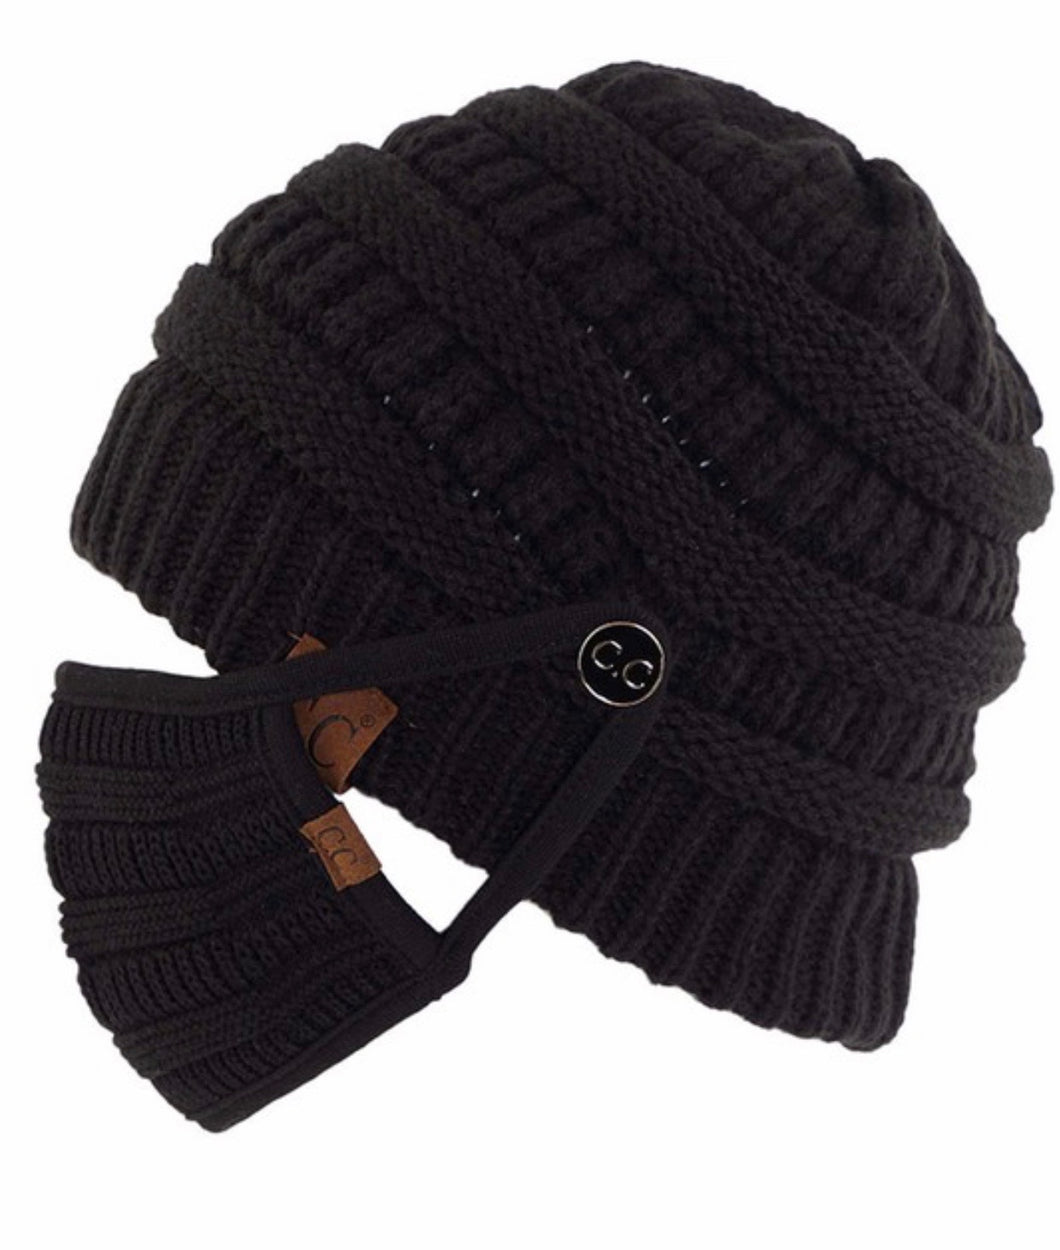 Ribbed Knit Beanie with Detachable Face Mask